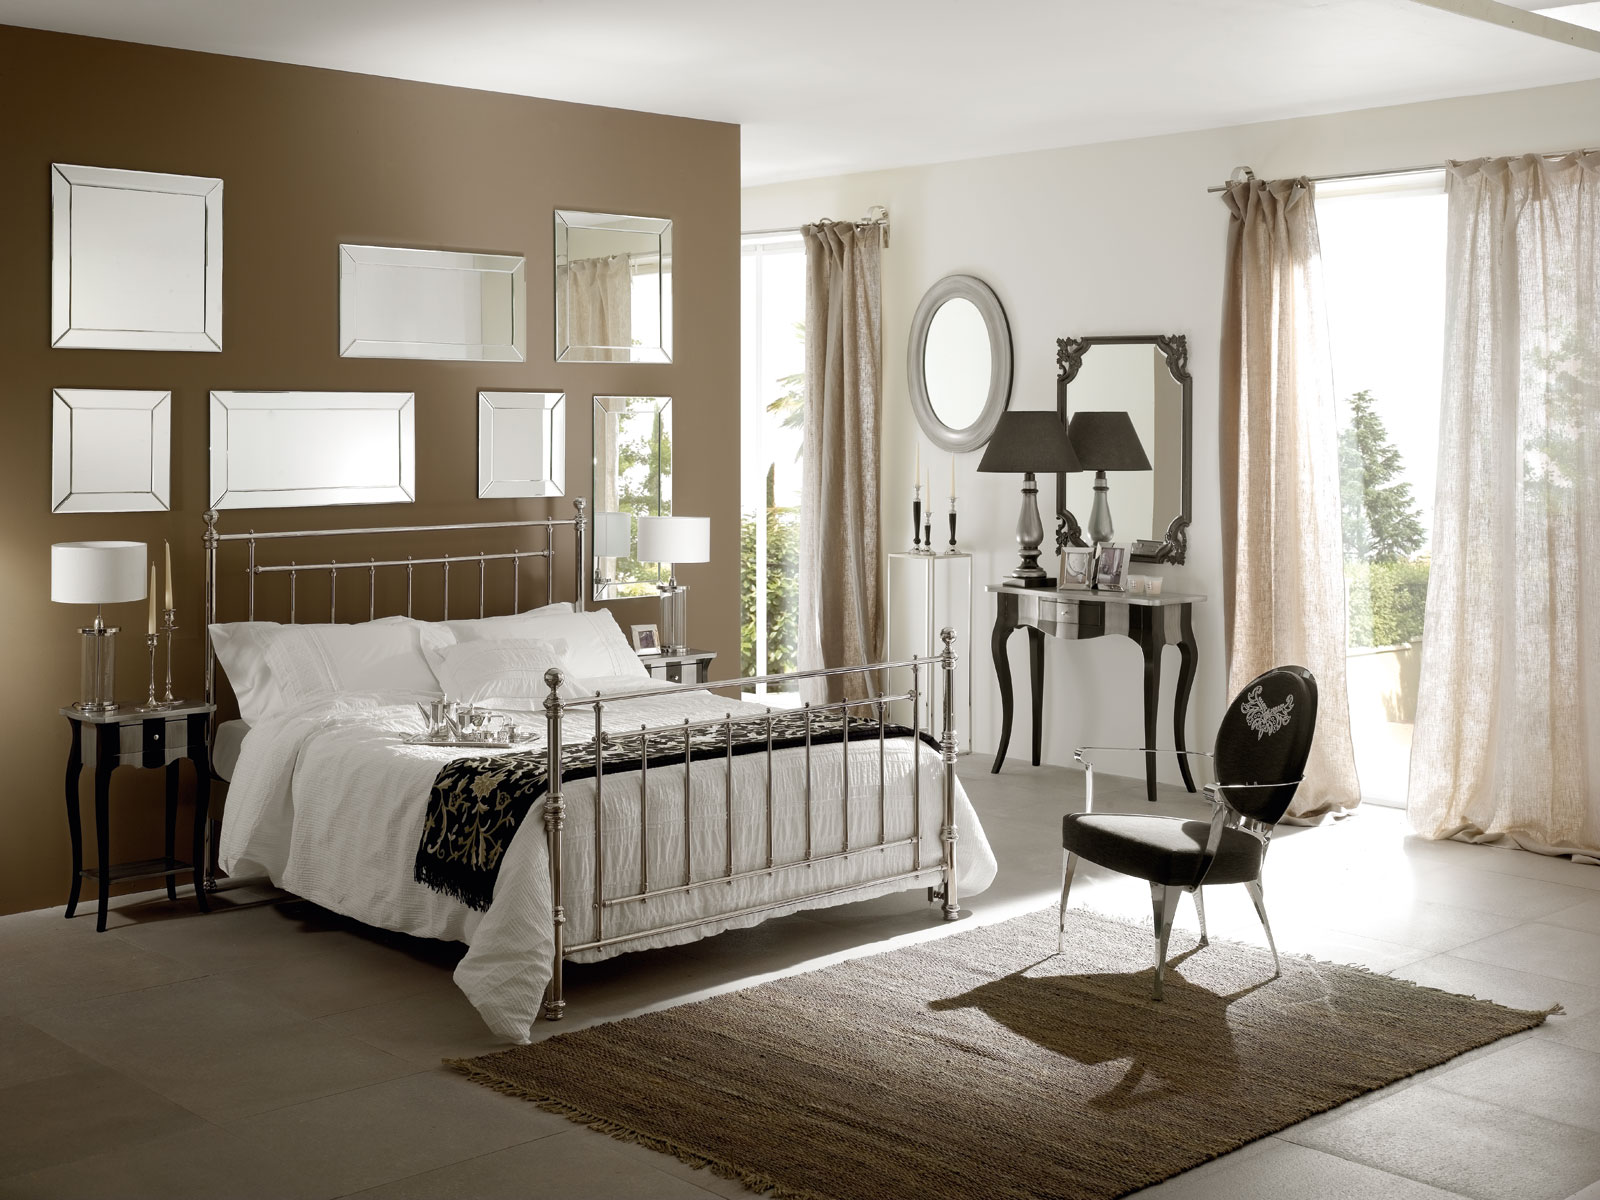 Bedroom Decor With Mirrors how to beautifully decorate a room with mirror